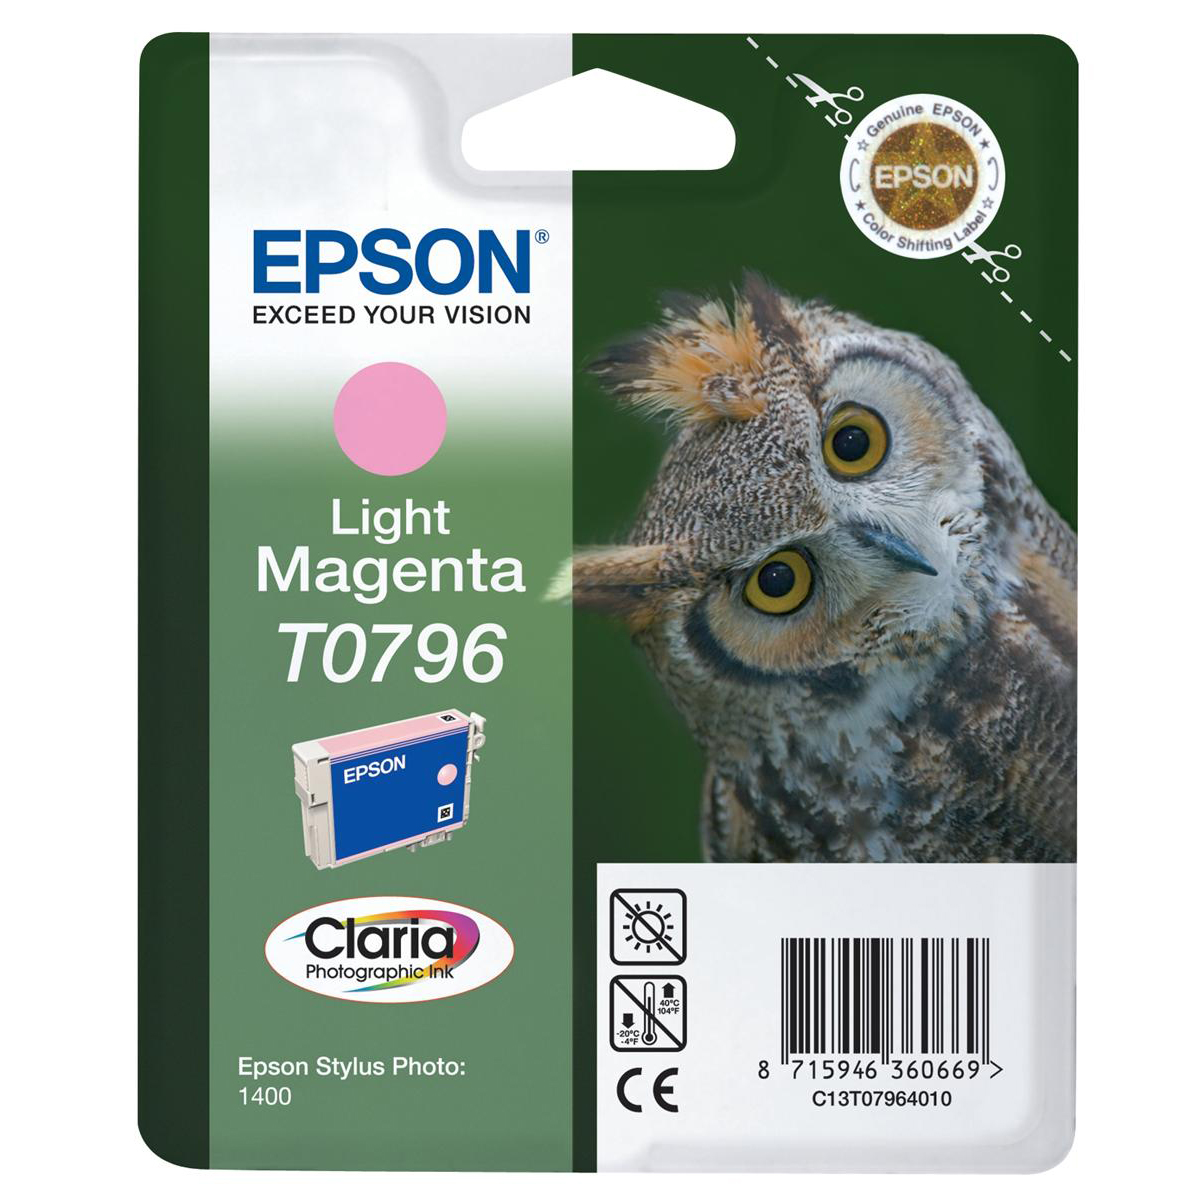 Epson T0796 Inkjet Cartridge Owl High Yield Page Life 975pp 11ml Light Magenta Ref C13T07964010